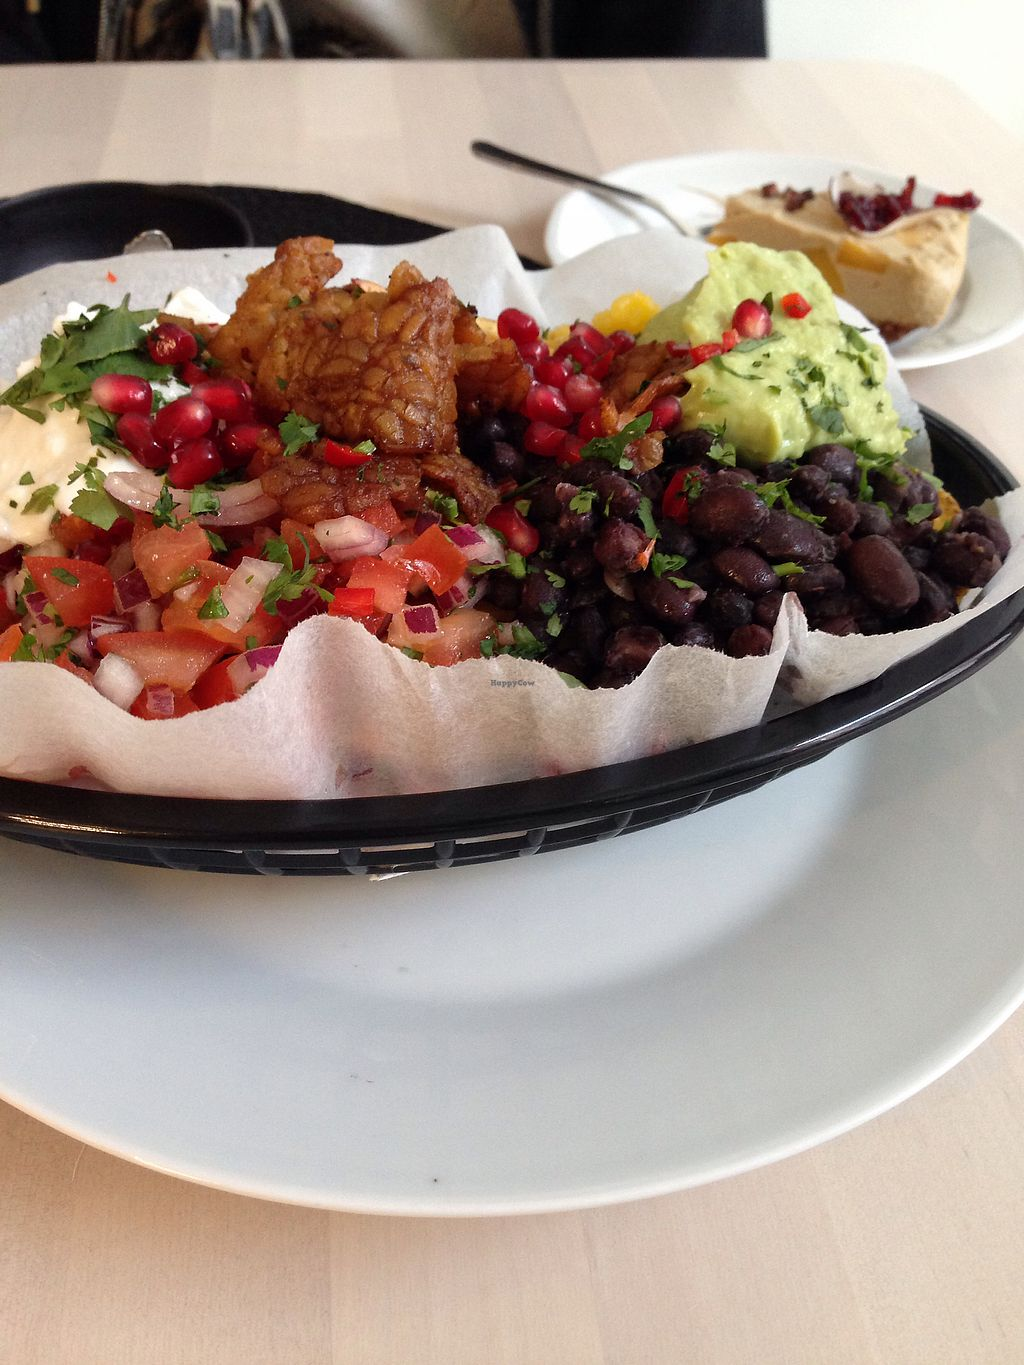 """Photo of Truefood Cafe  by <a href=""""/members/profile/Calandria"""">Calandria</a> <br/>Nachos and mango """"cheese""""cake <br/> March 16, 2018  - <a href='/contact/abuse/image/109958/371428'>Report</a>"""